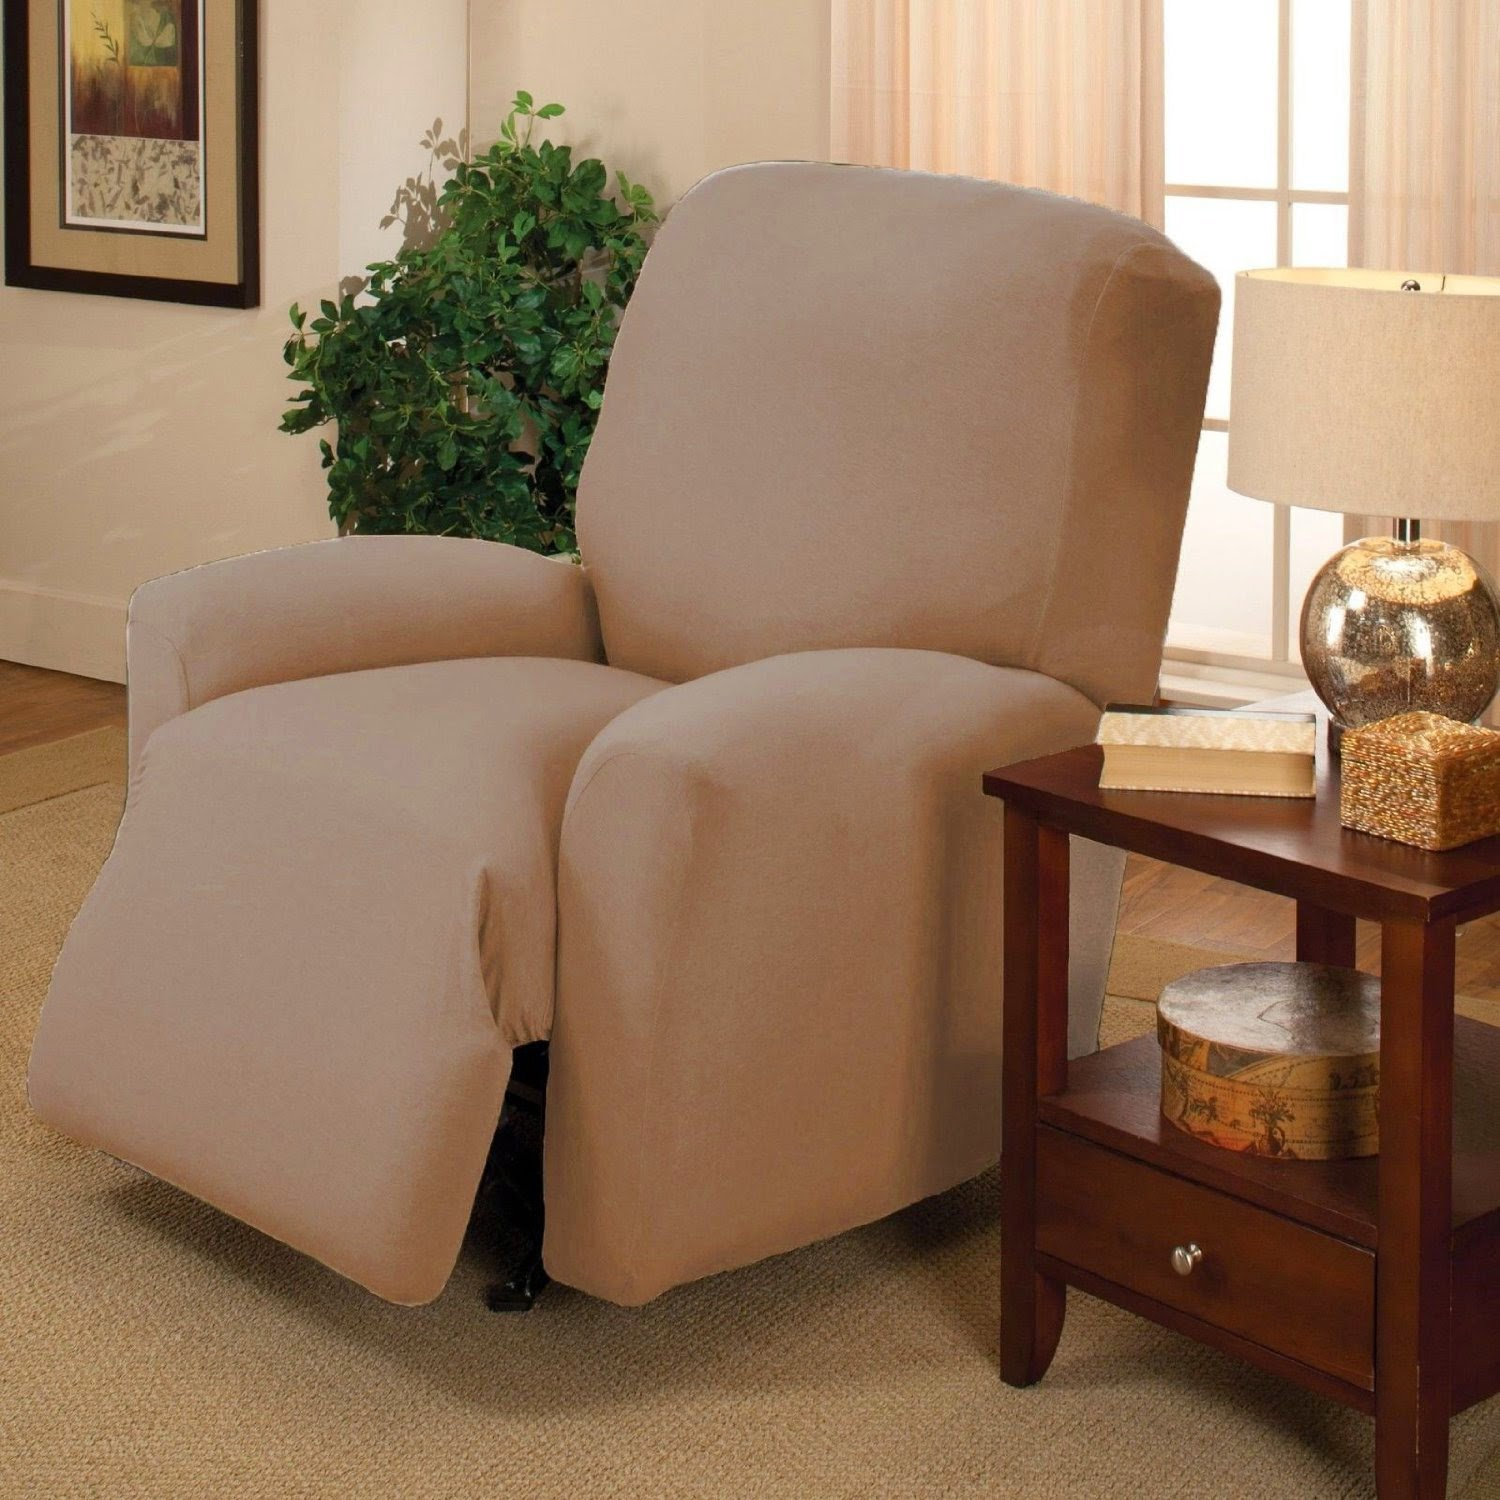 Best Recliner Sofa Brand Recommendation Wanted: Slipcover